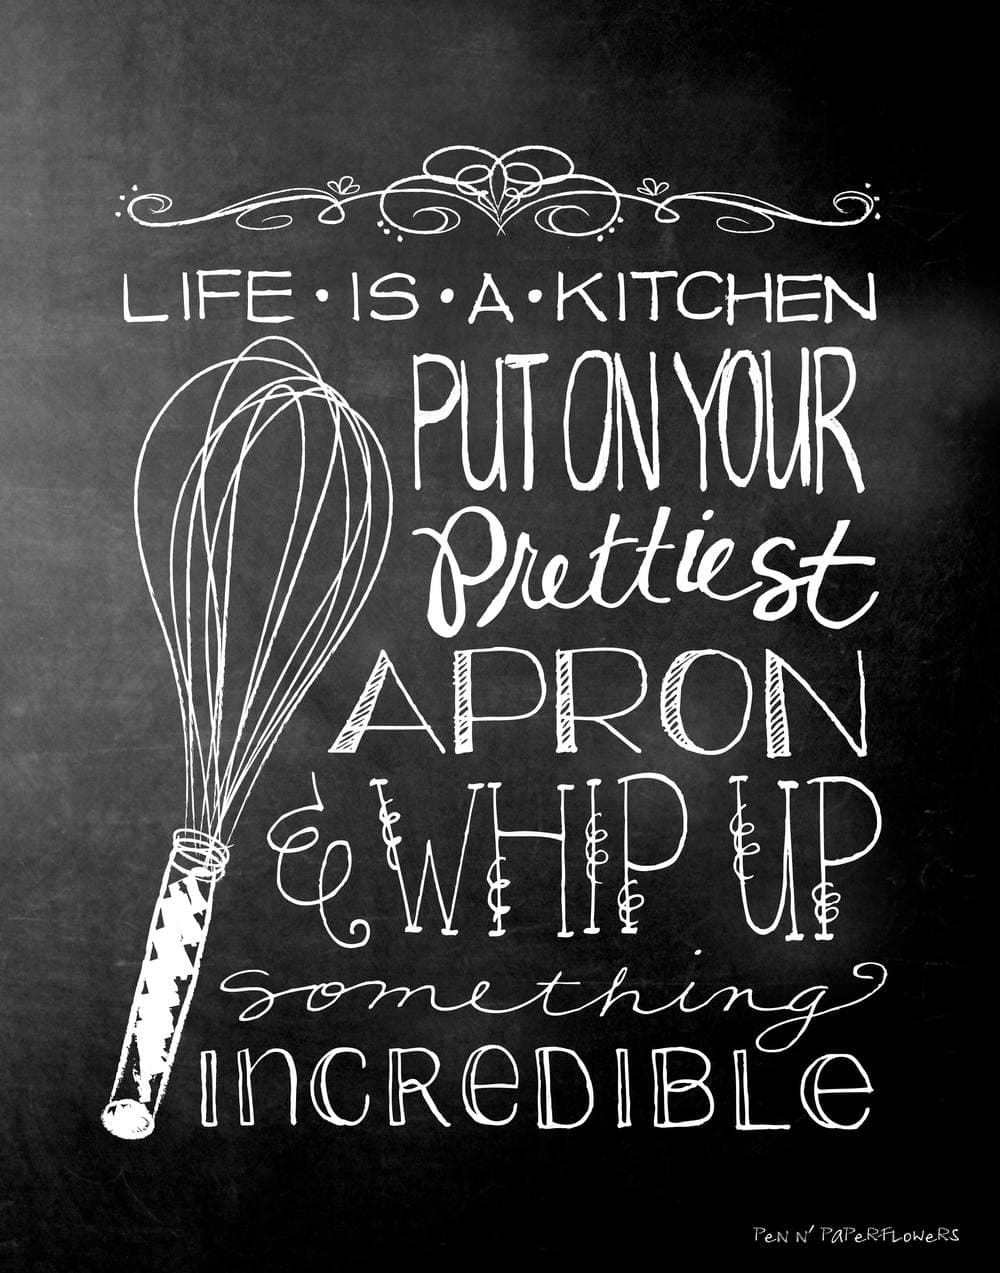 Printable kitchen art - Just